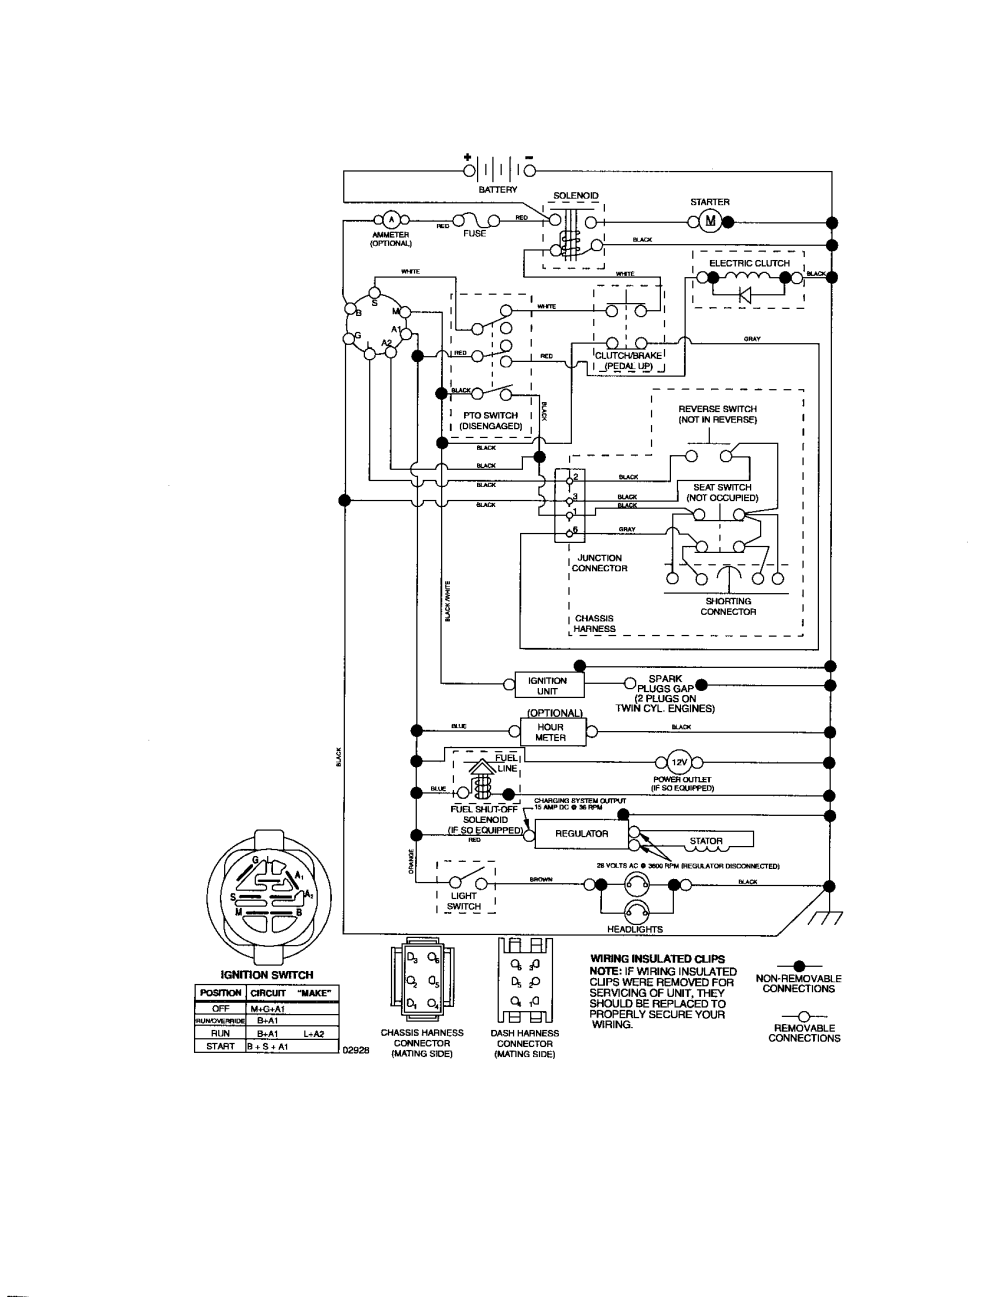 medium resolution of sears motor wiring diagram wiring diagram schematics dynamark 3 20 snowblower manuals craftsman model 917276630 lawn